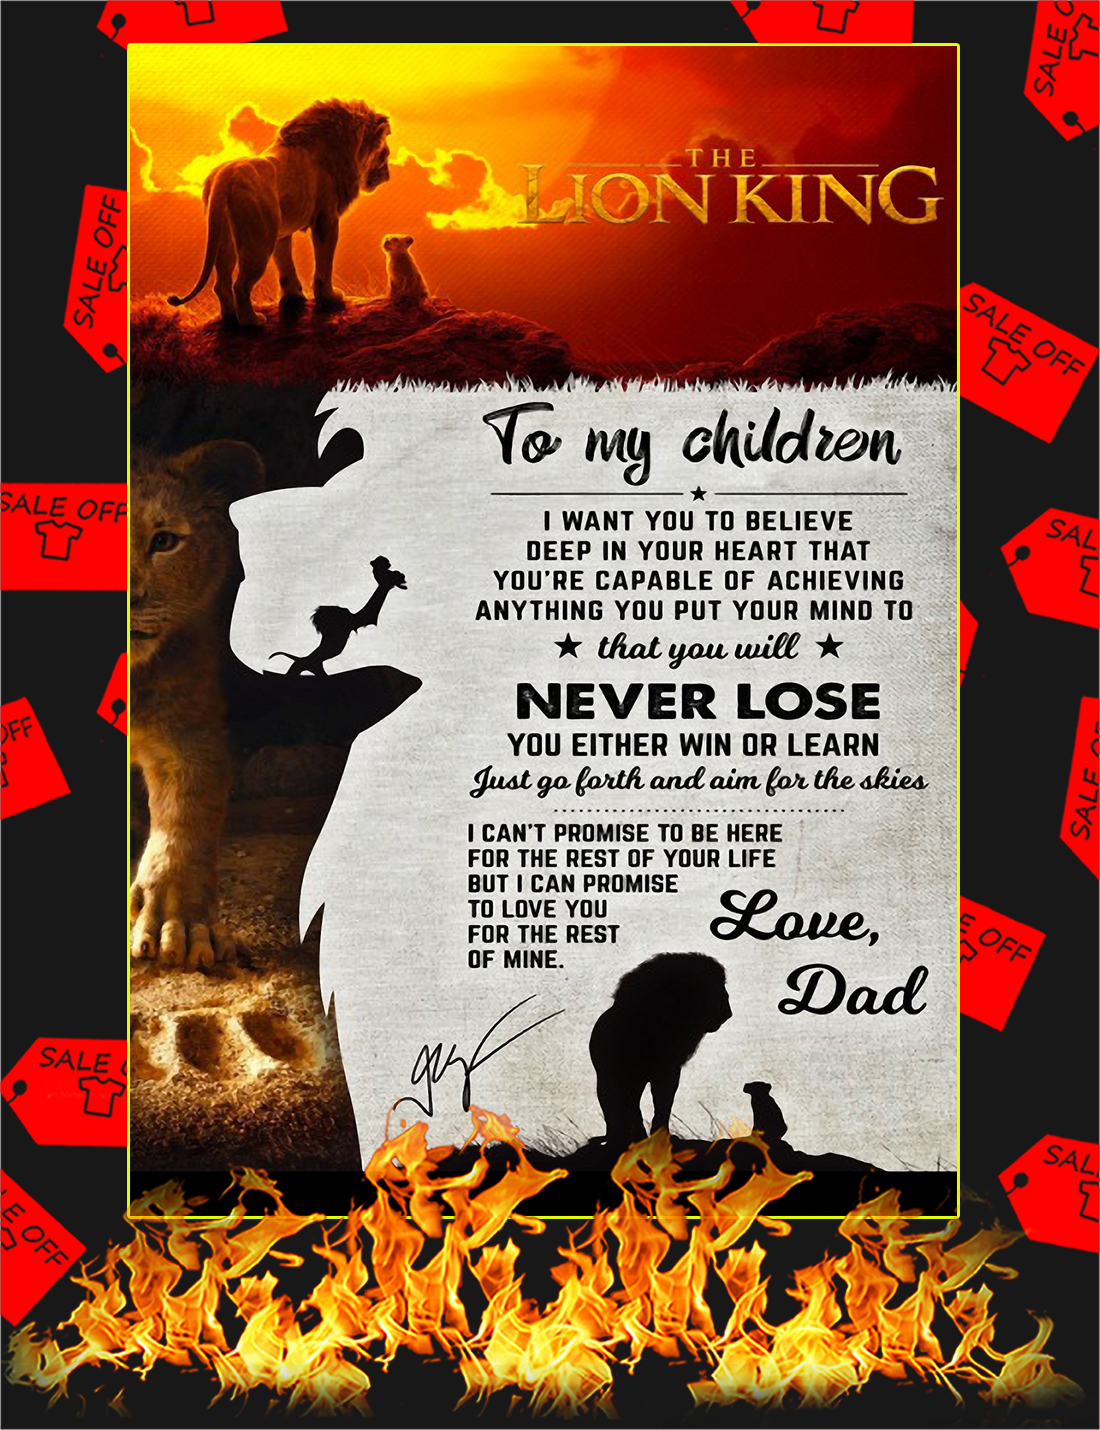 The lion king to my children love dad poster